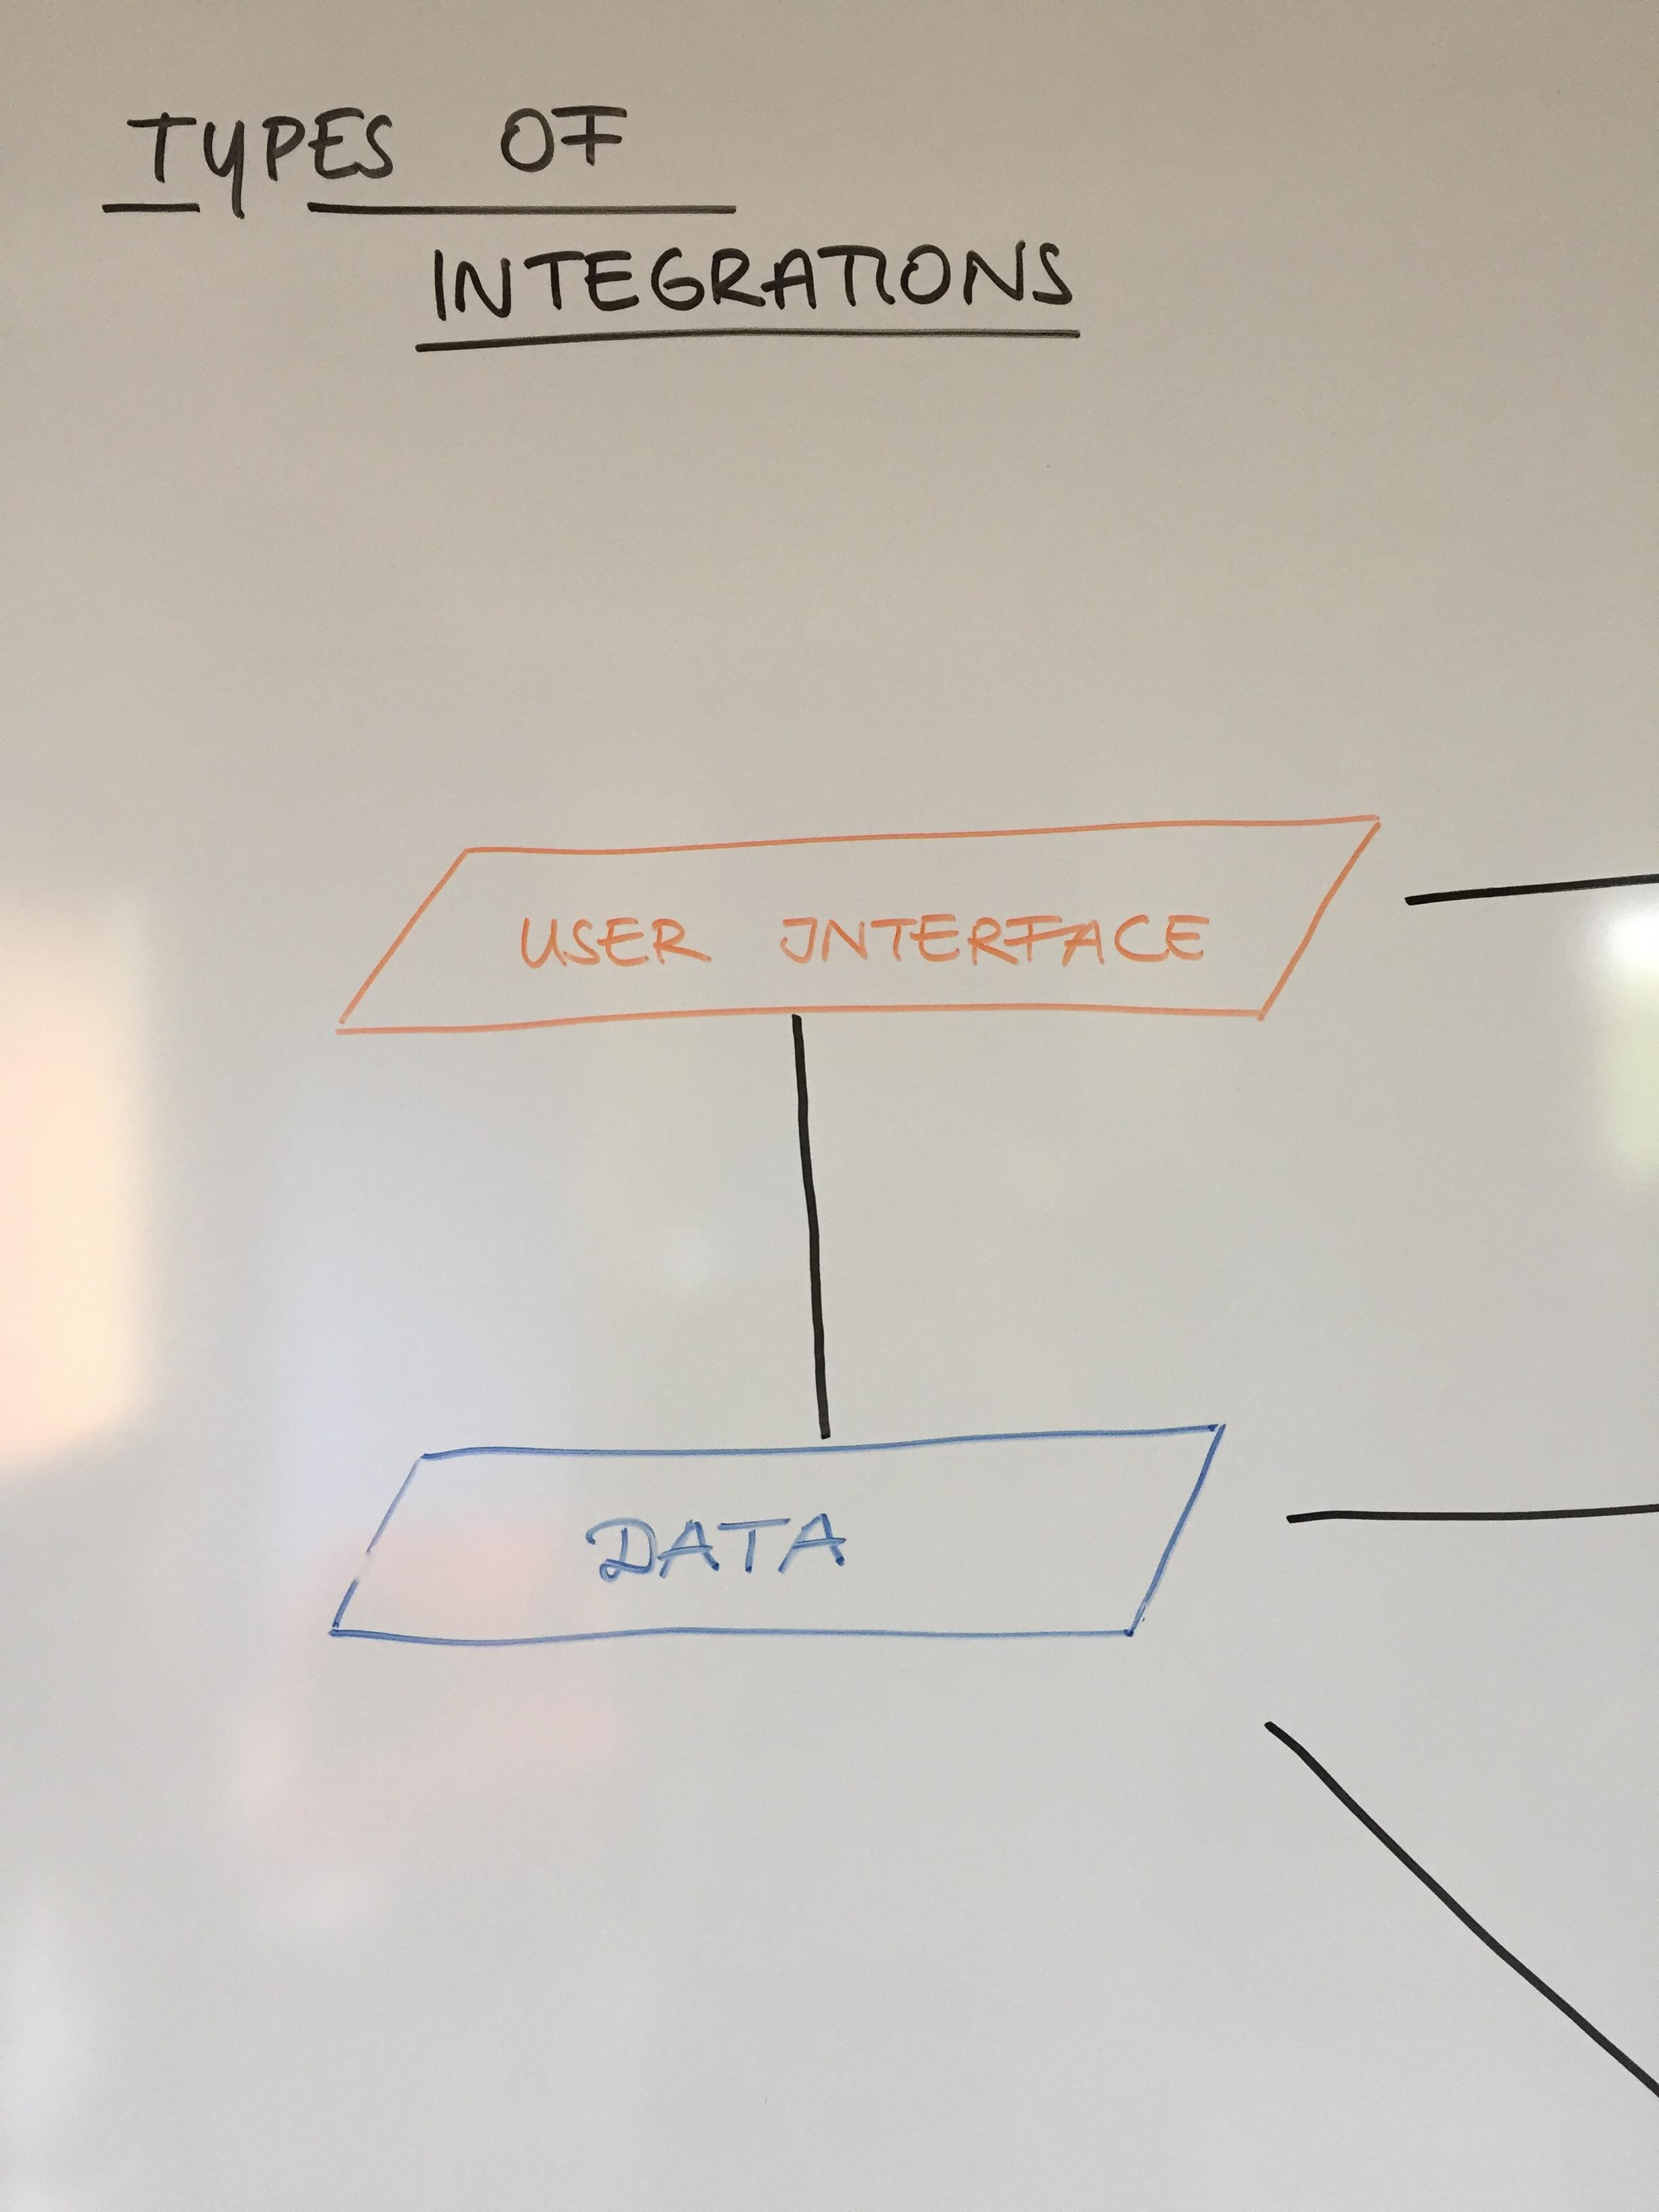 Types of Integrations